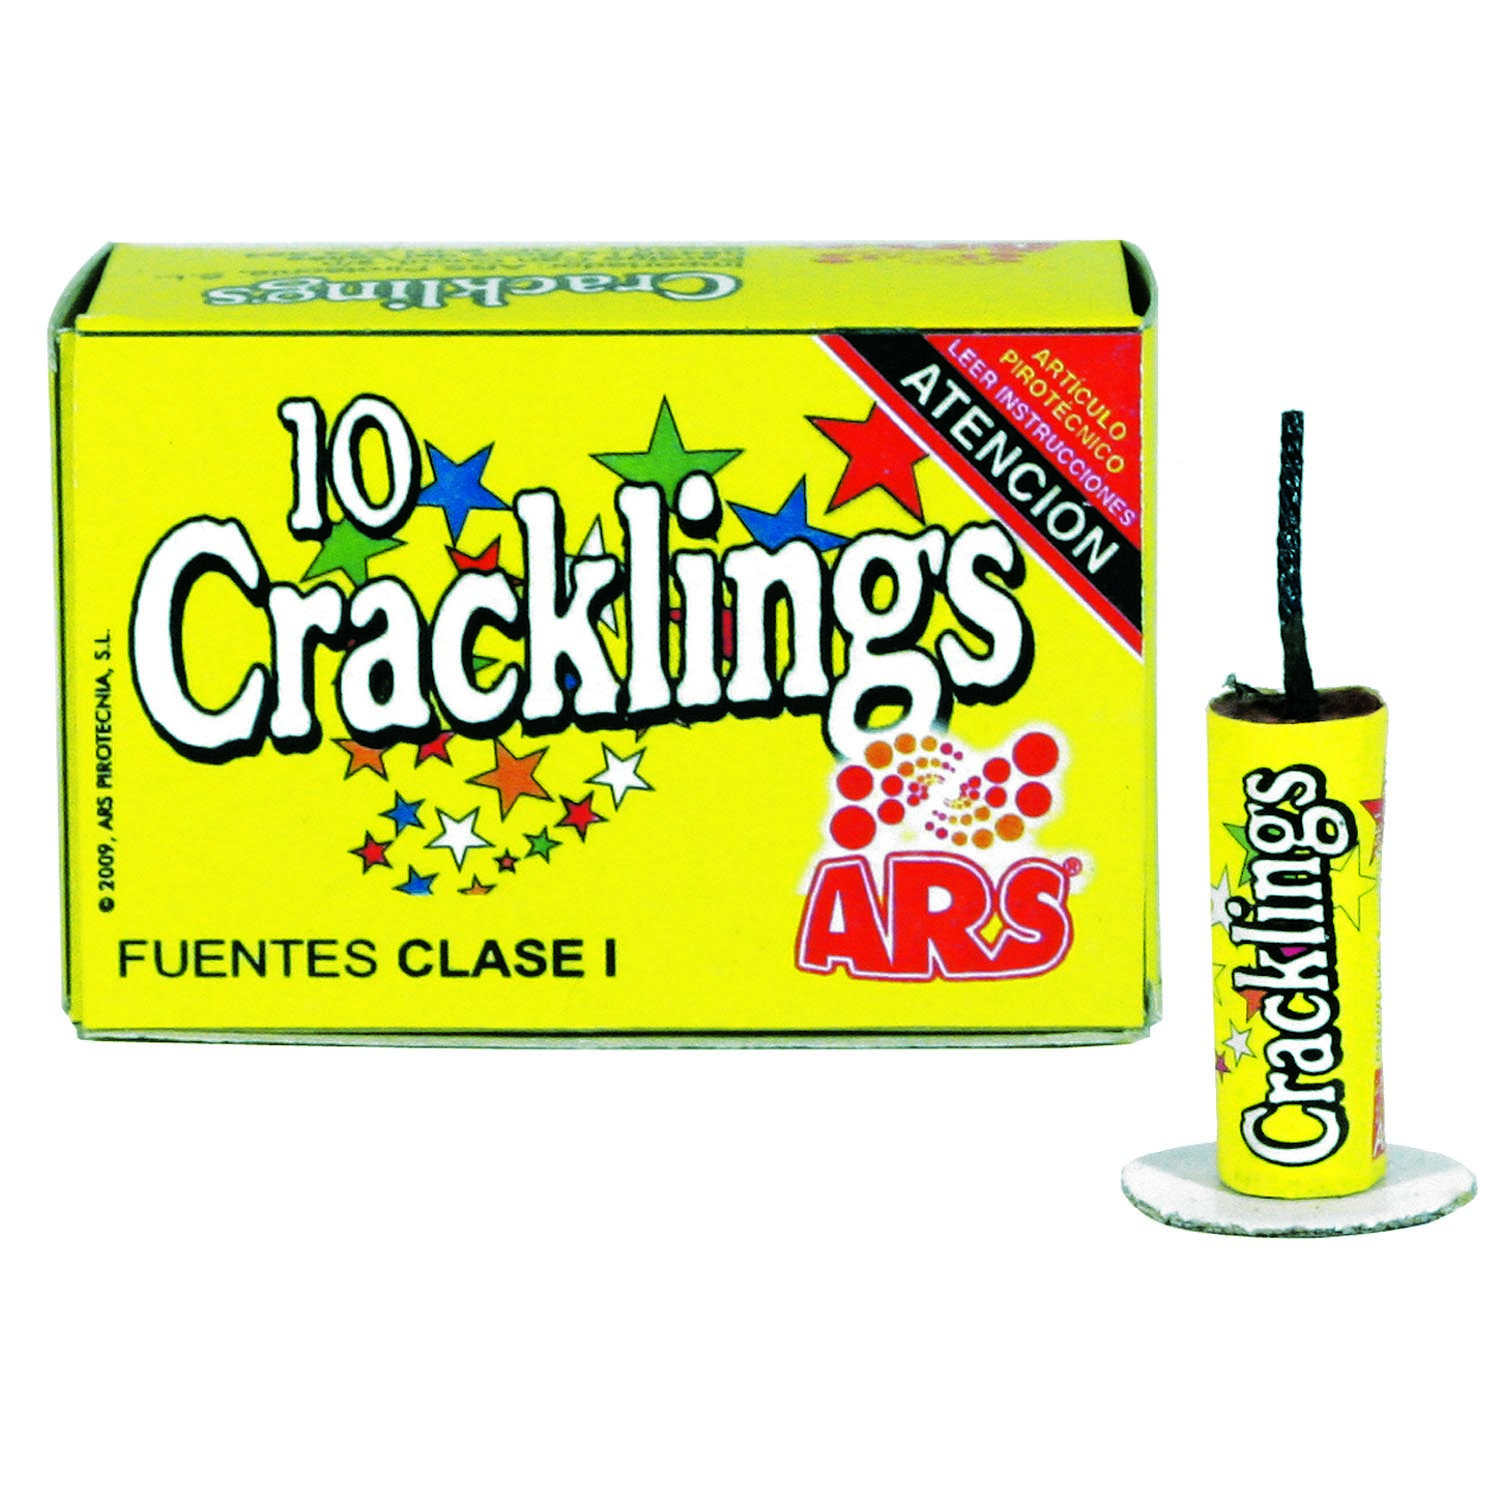 Fuentes Cracklings